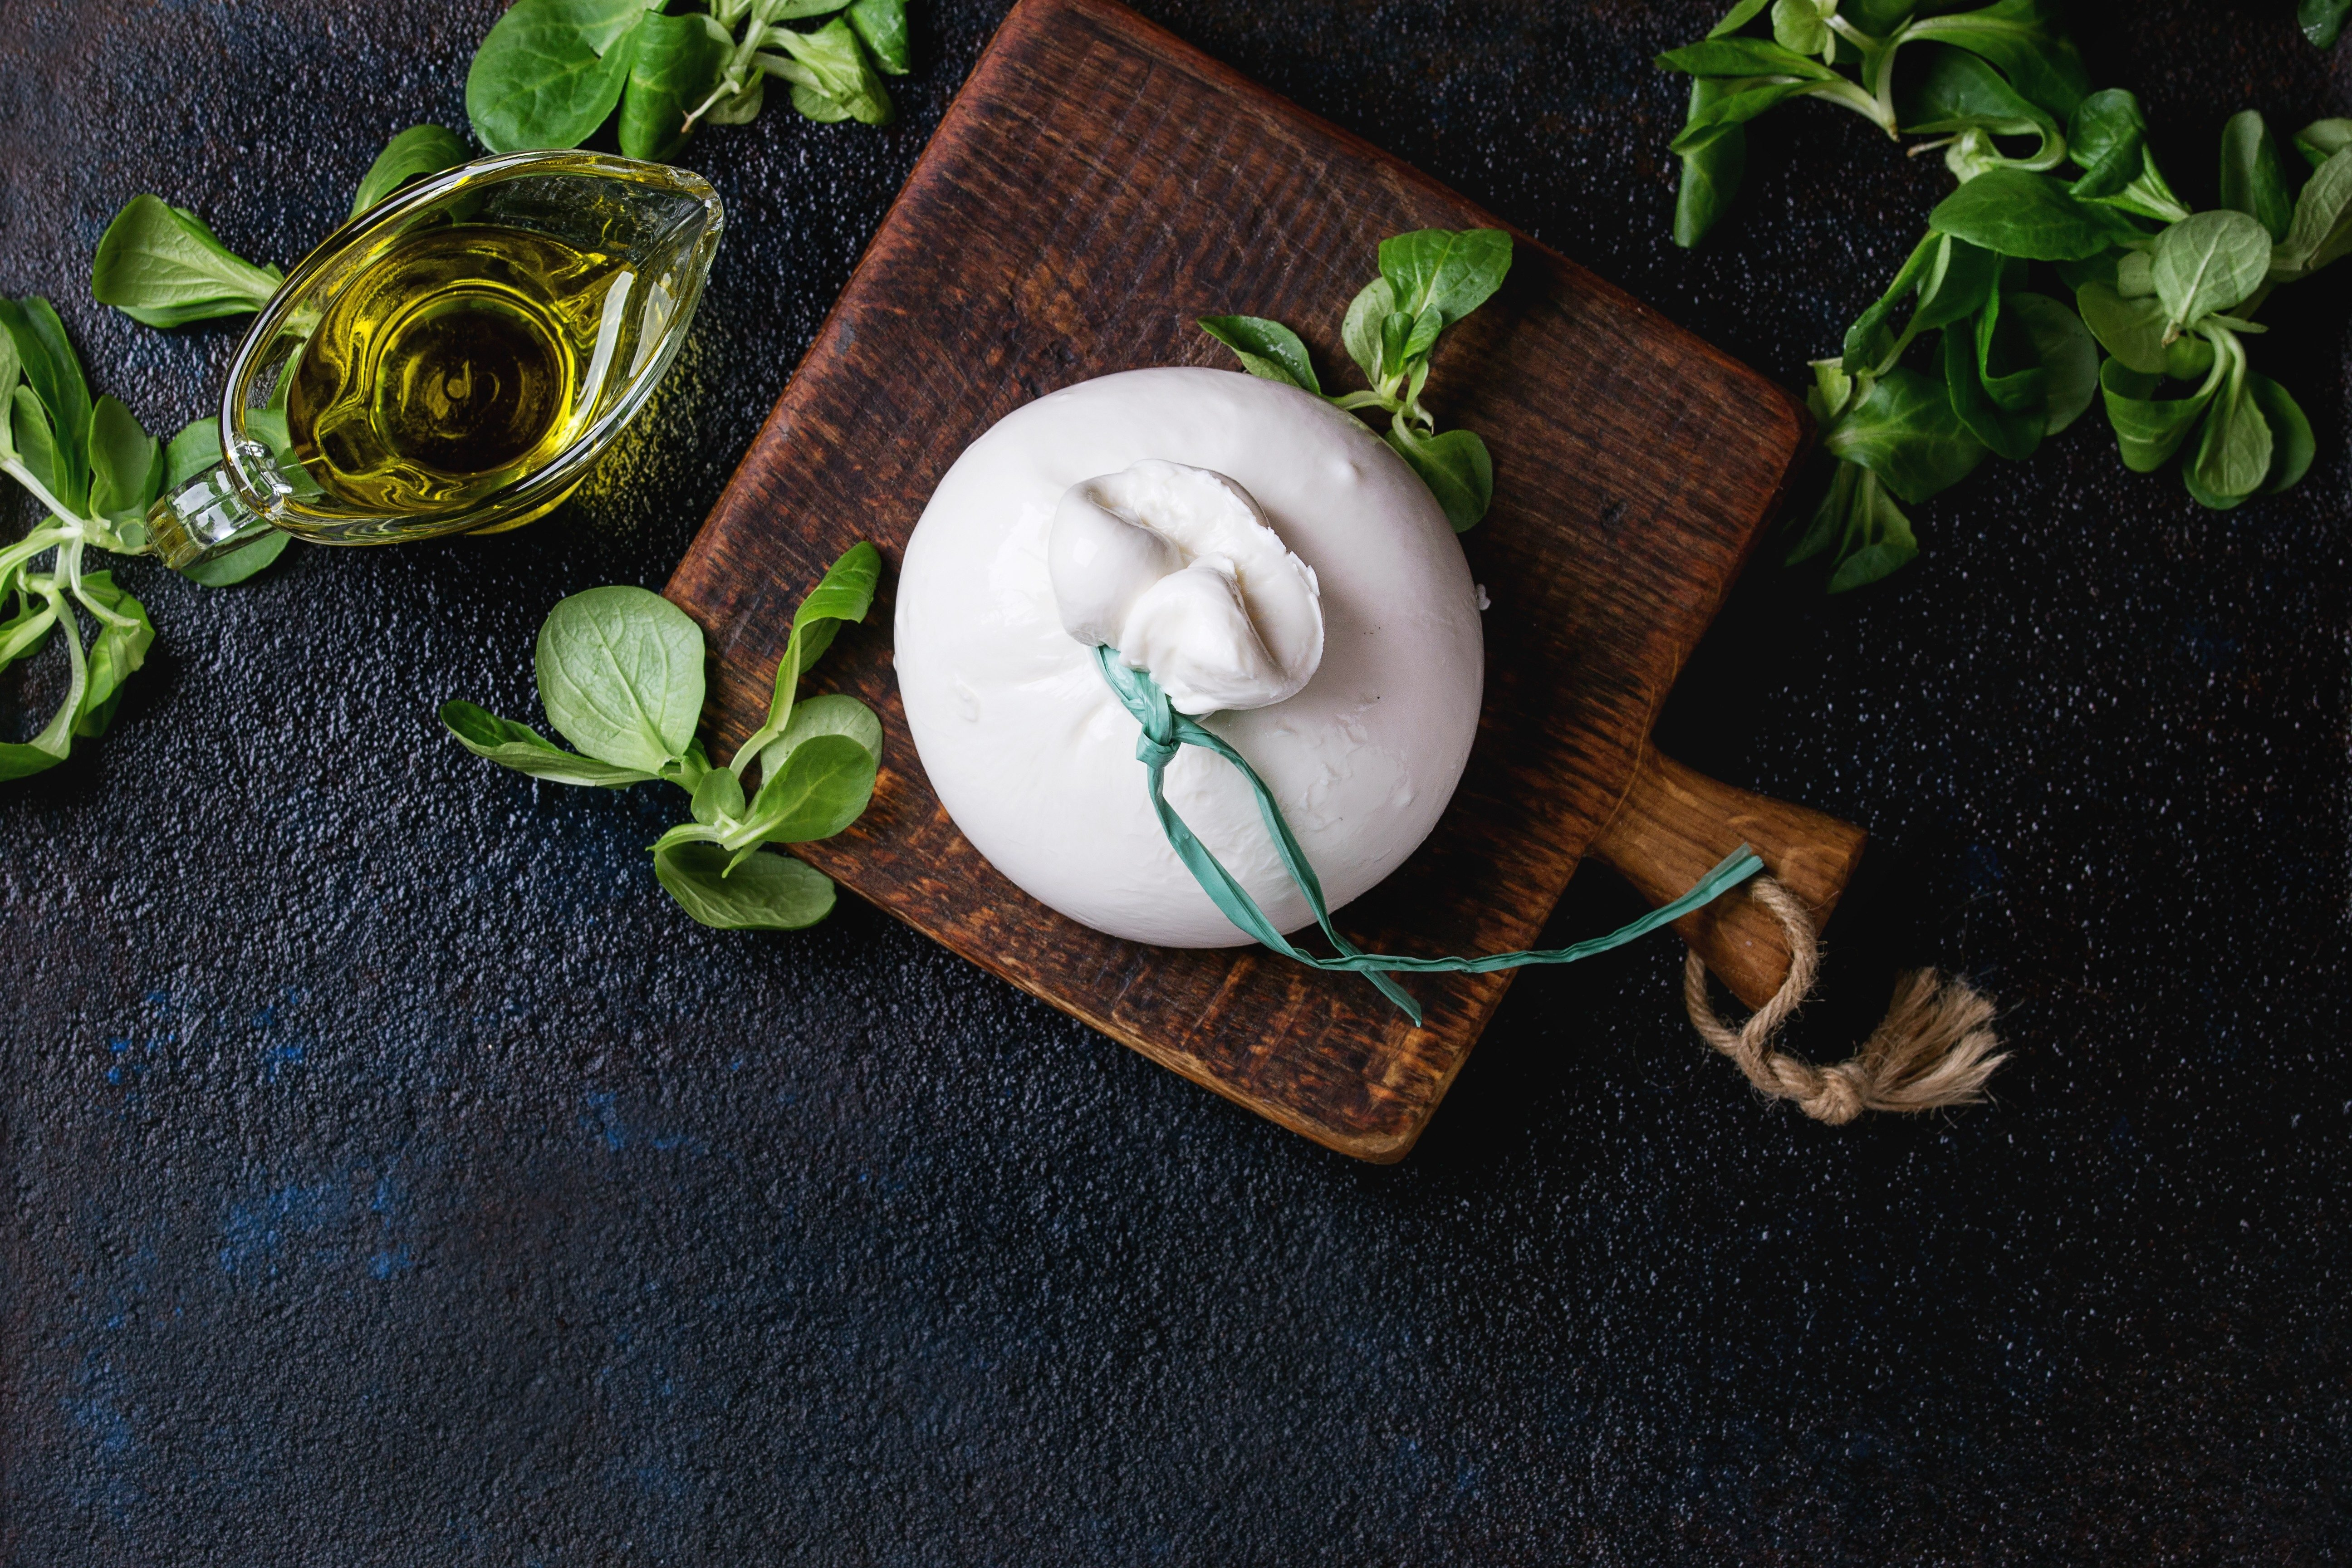 Whole tied Italian cheese burrata on small wooden cutting board served with fresh corn salad and olive oil over dark textural background. Overhead view